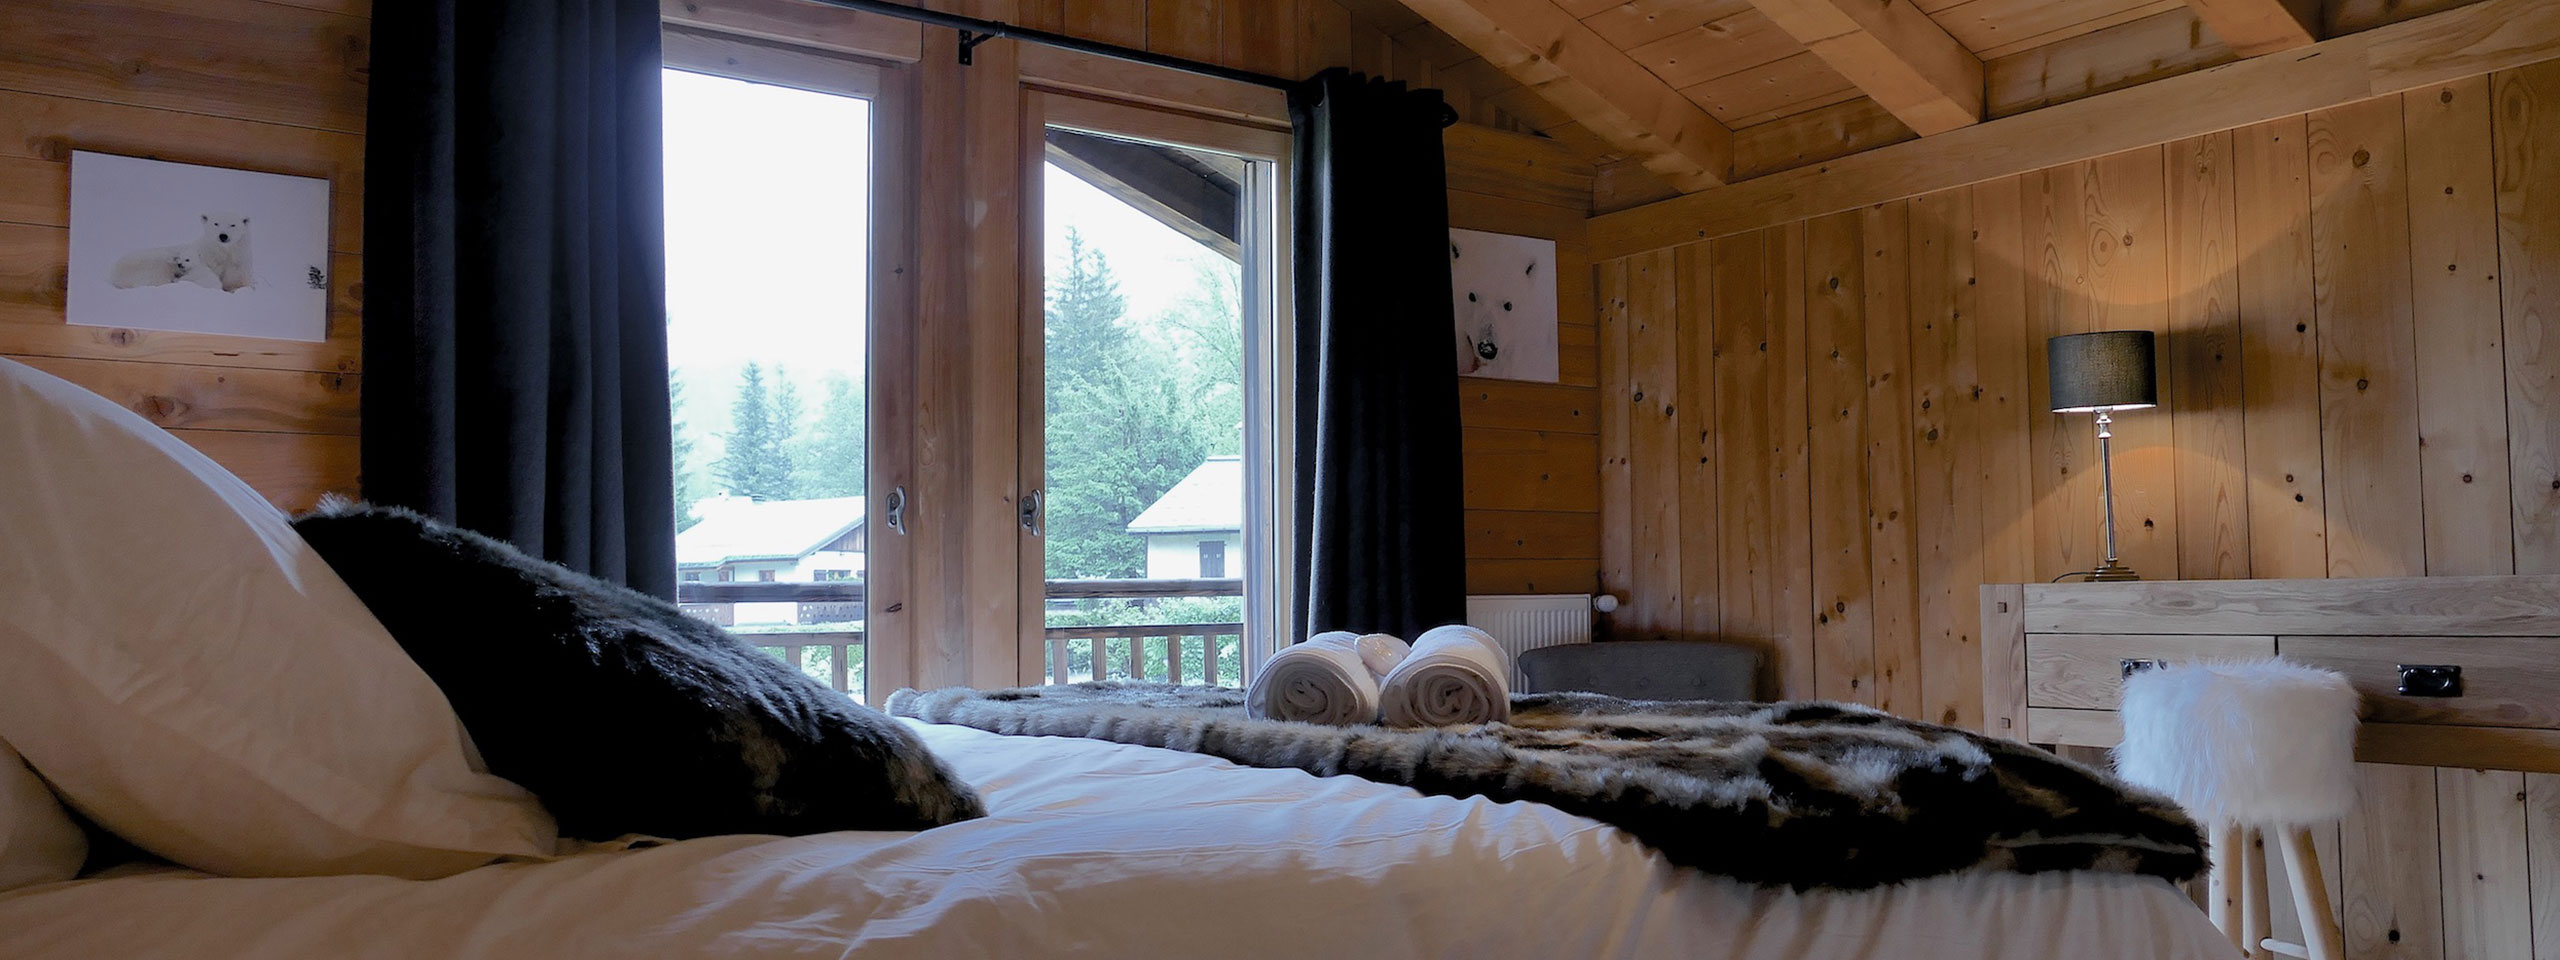 3cimesblanches Chamonix Masterbedroom